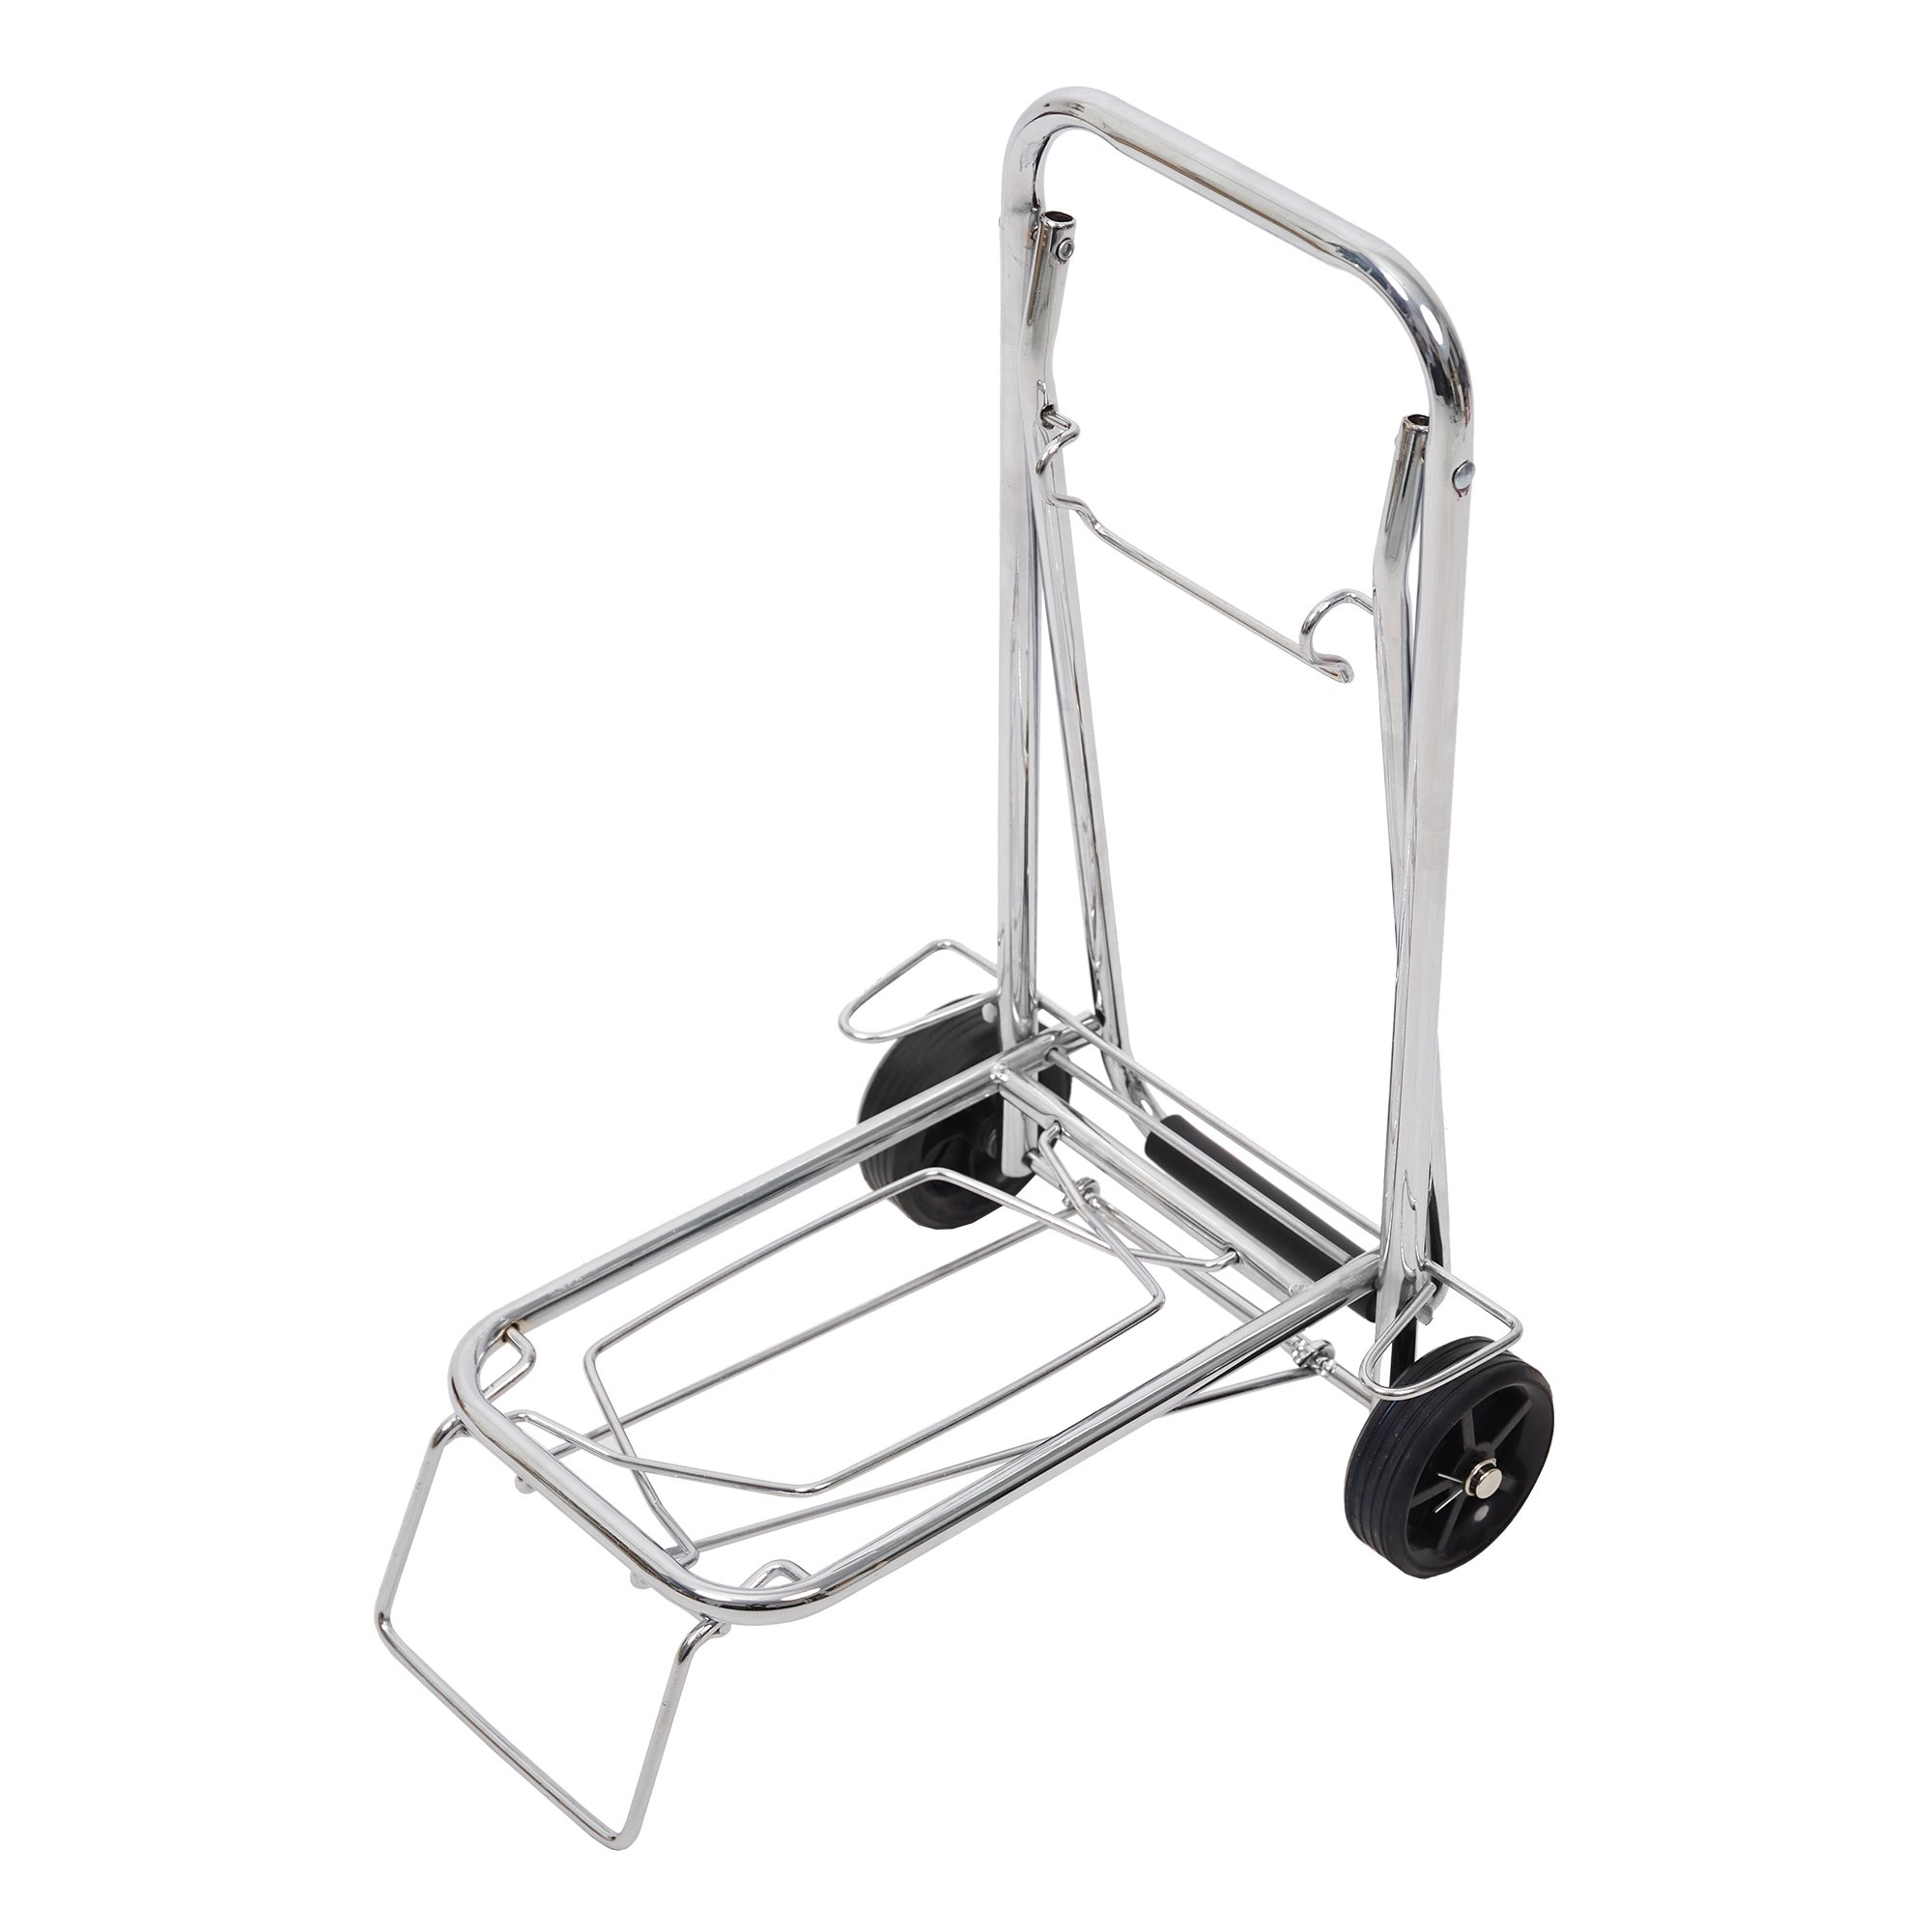 Lucky Tree Aluminum Folding Hand Truck Portable Fold Up Dolly with Wheels for Indoor Outdoor Travel Shopping Office,55lbs (Silver)